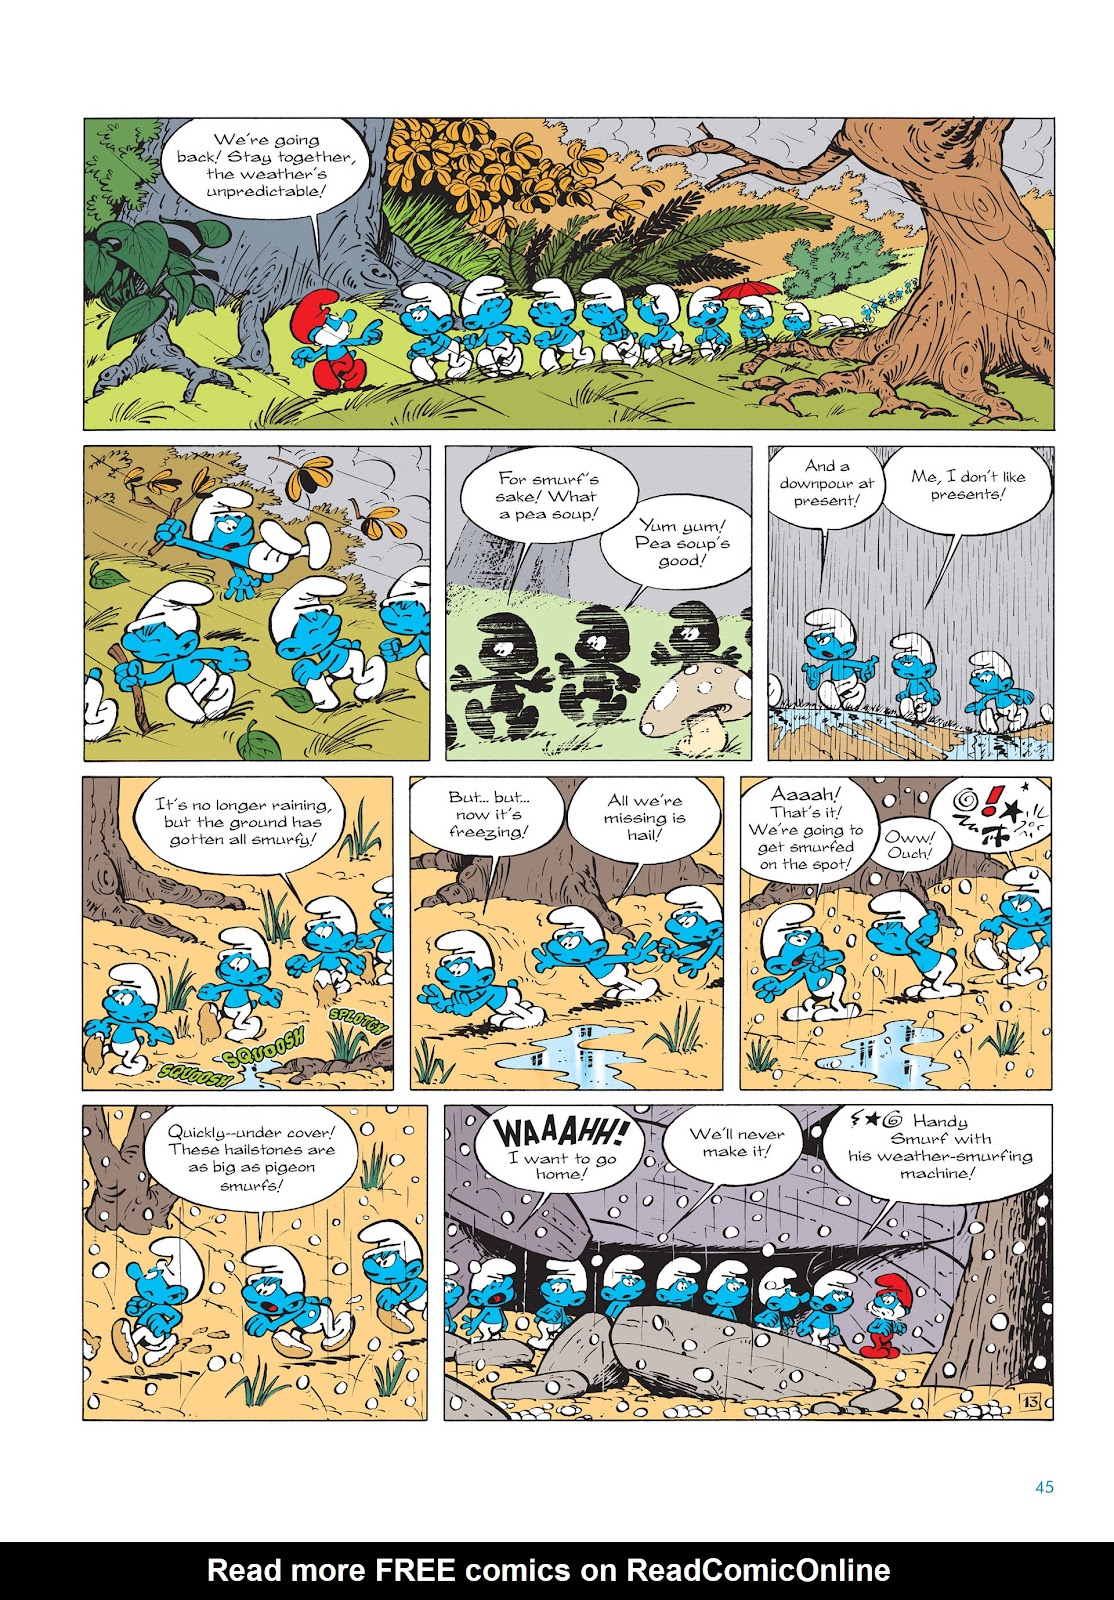 Read online The Smurfs comic -  Issue #14 - 46